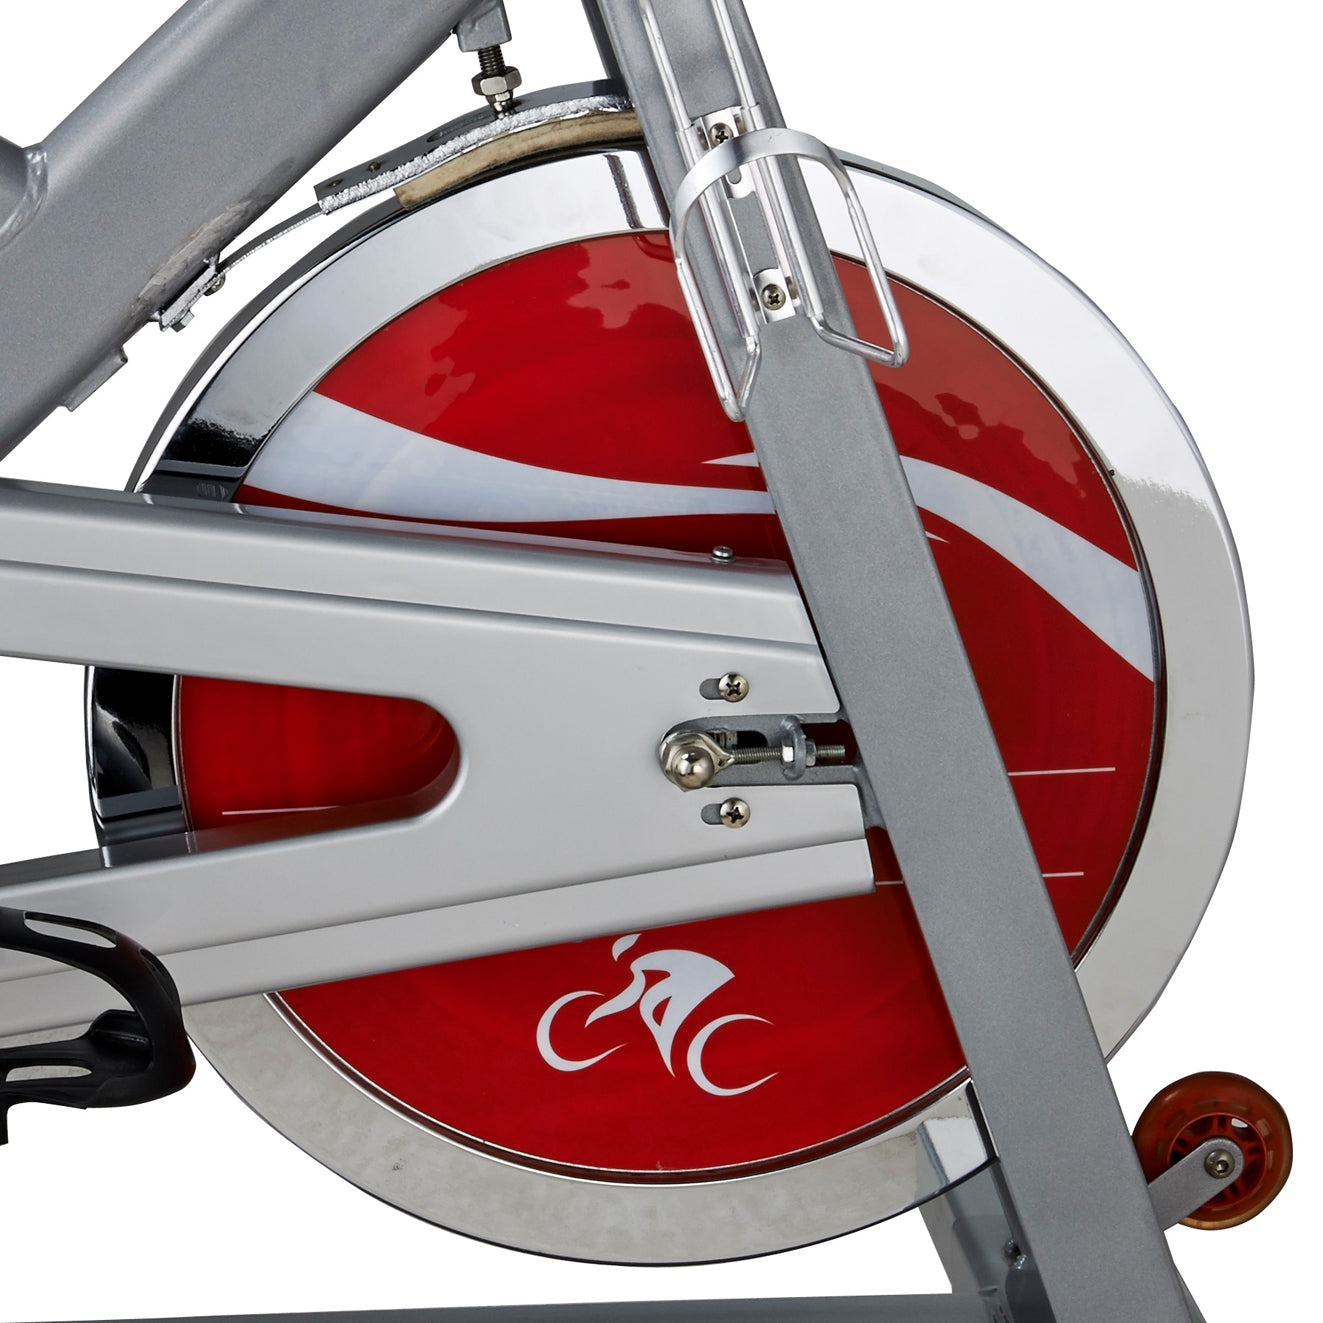 sunny-health-fitness-bikes-chain-drive-indoor-cycling-trainer-silver-SF-B1110S-bottleholder